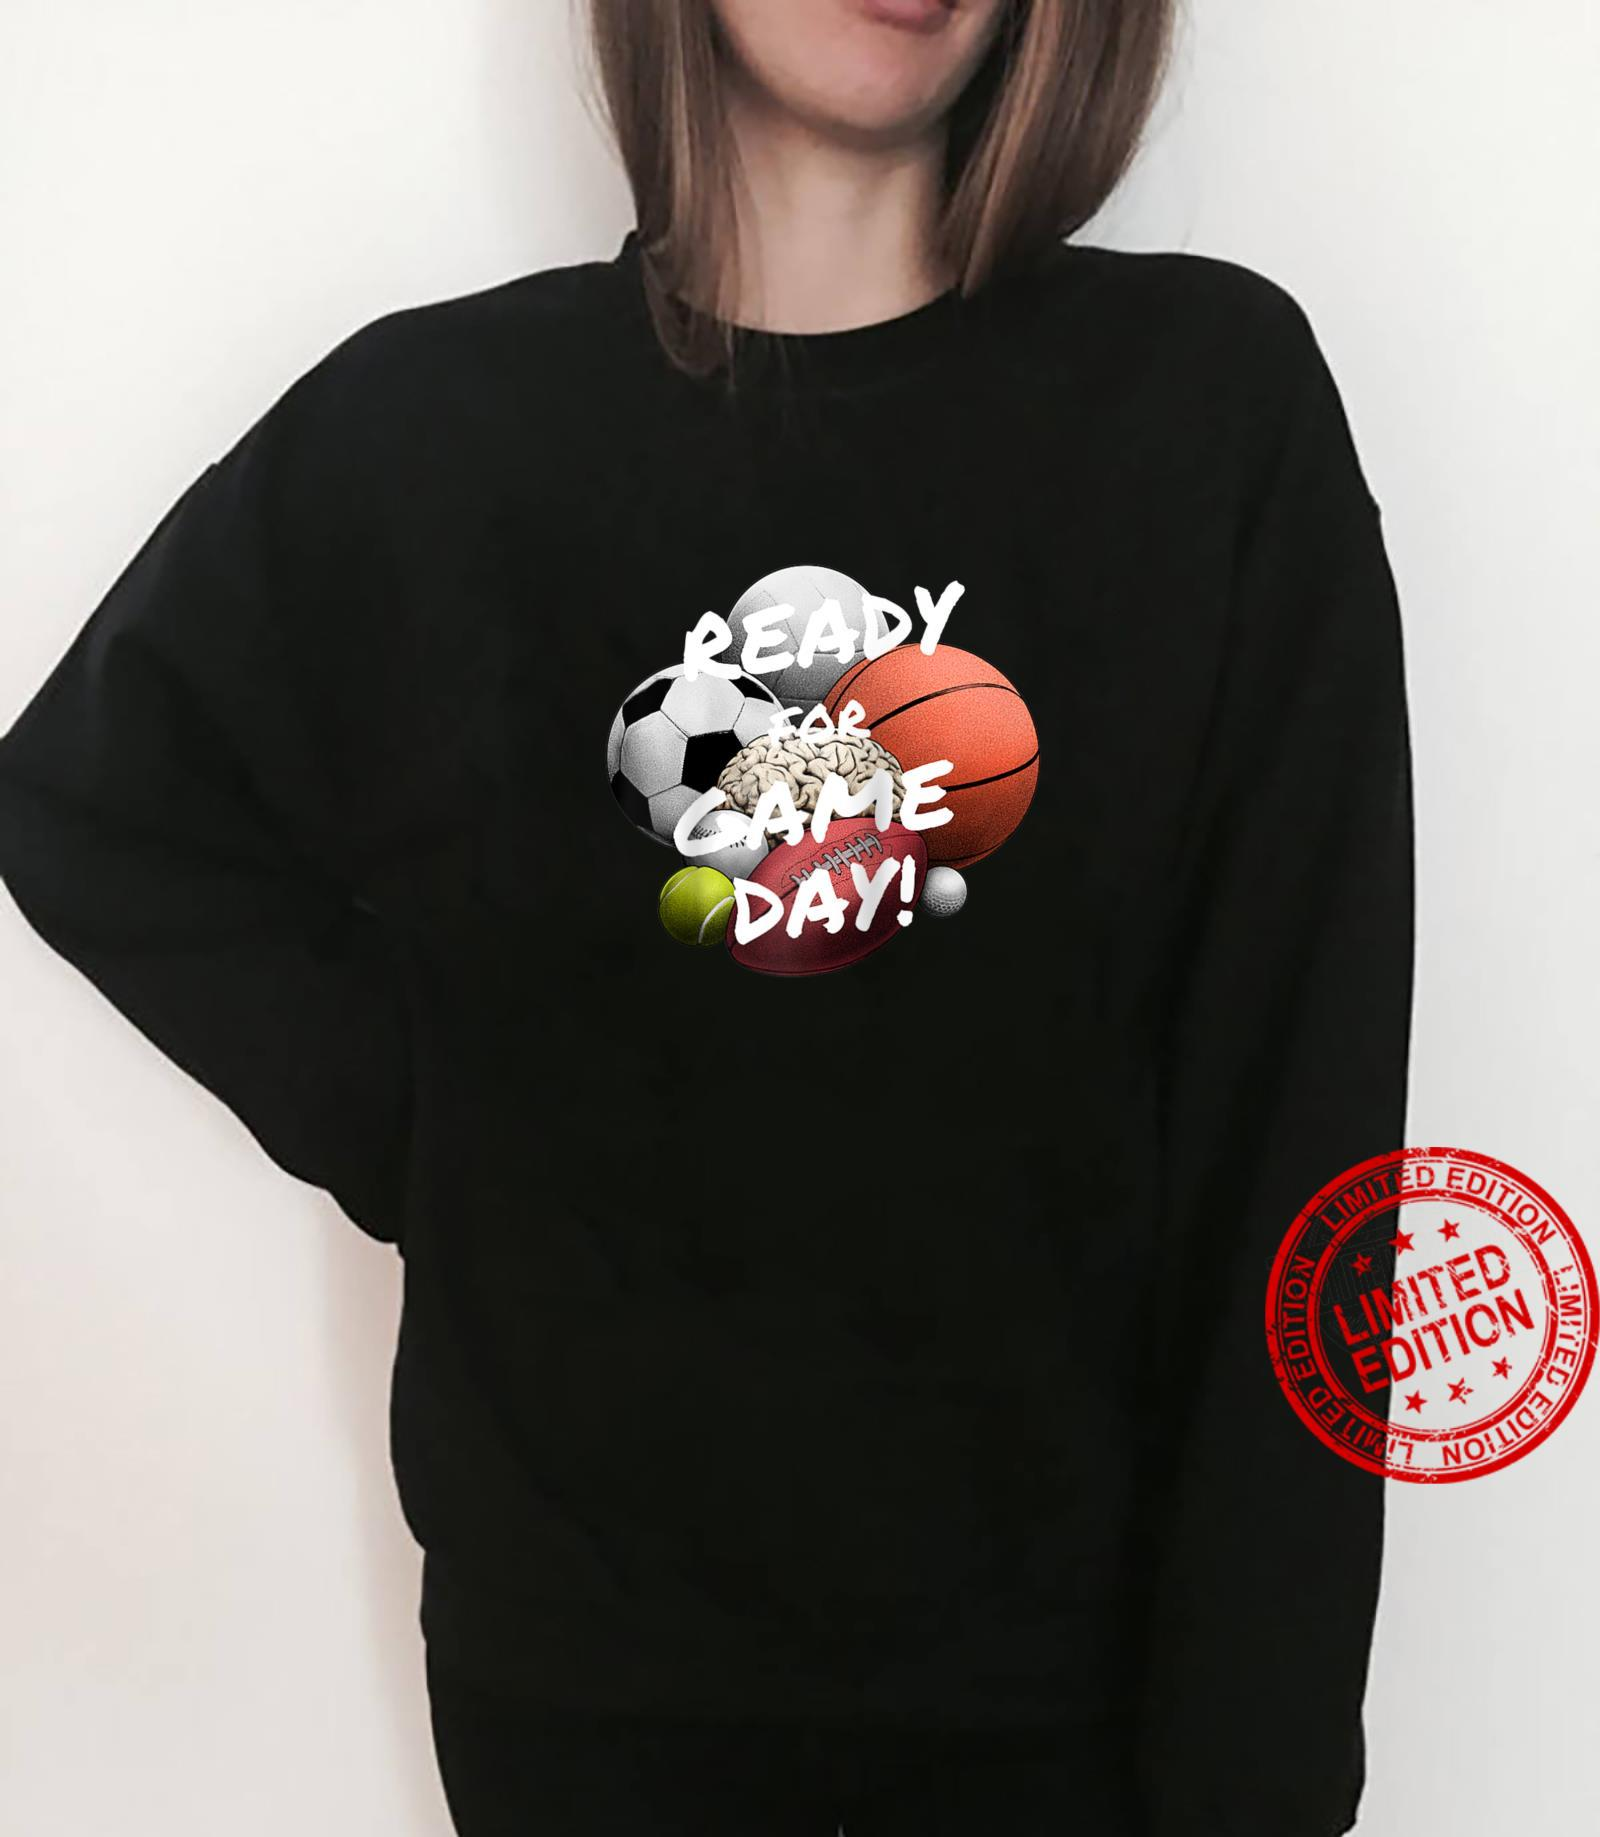 Ready For Game Day's's Boy's Girls' Sports Shirt sweater